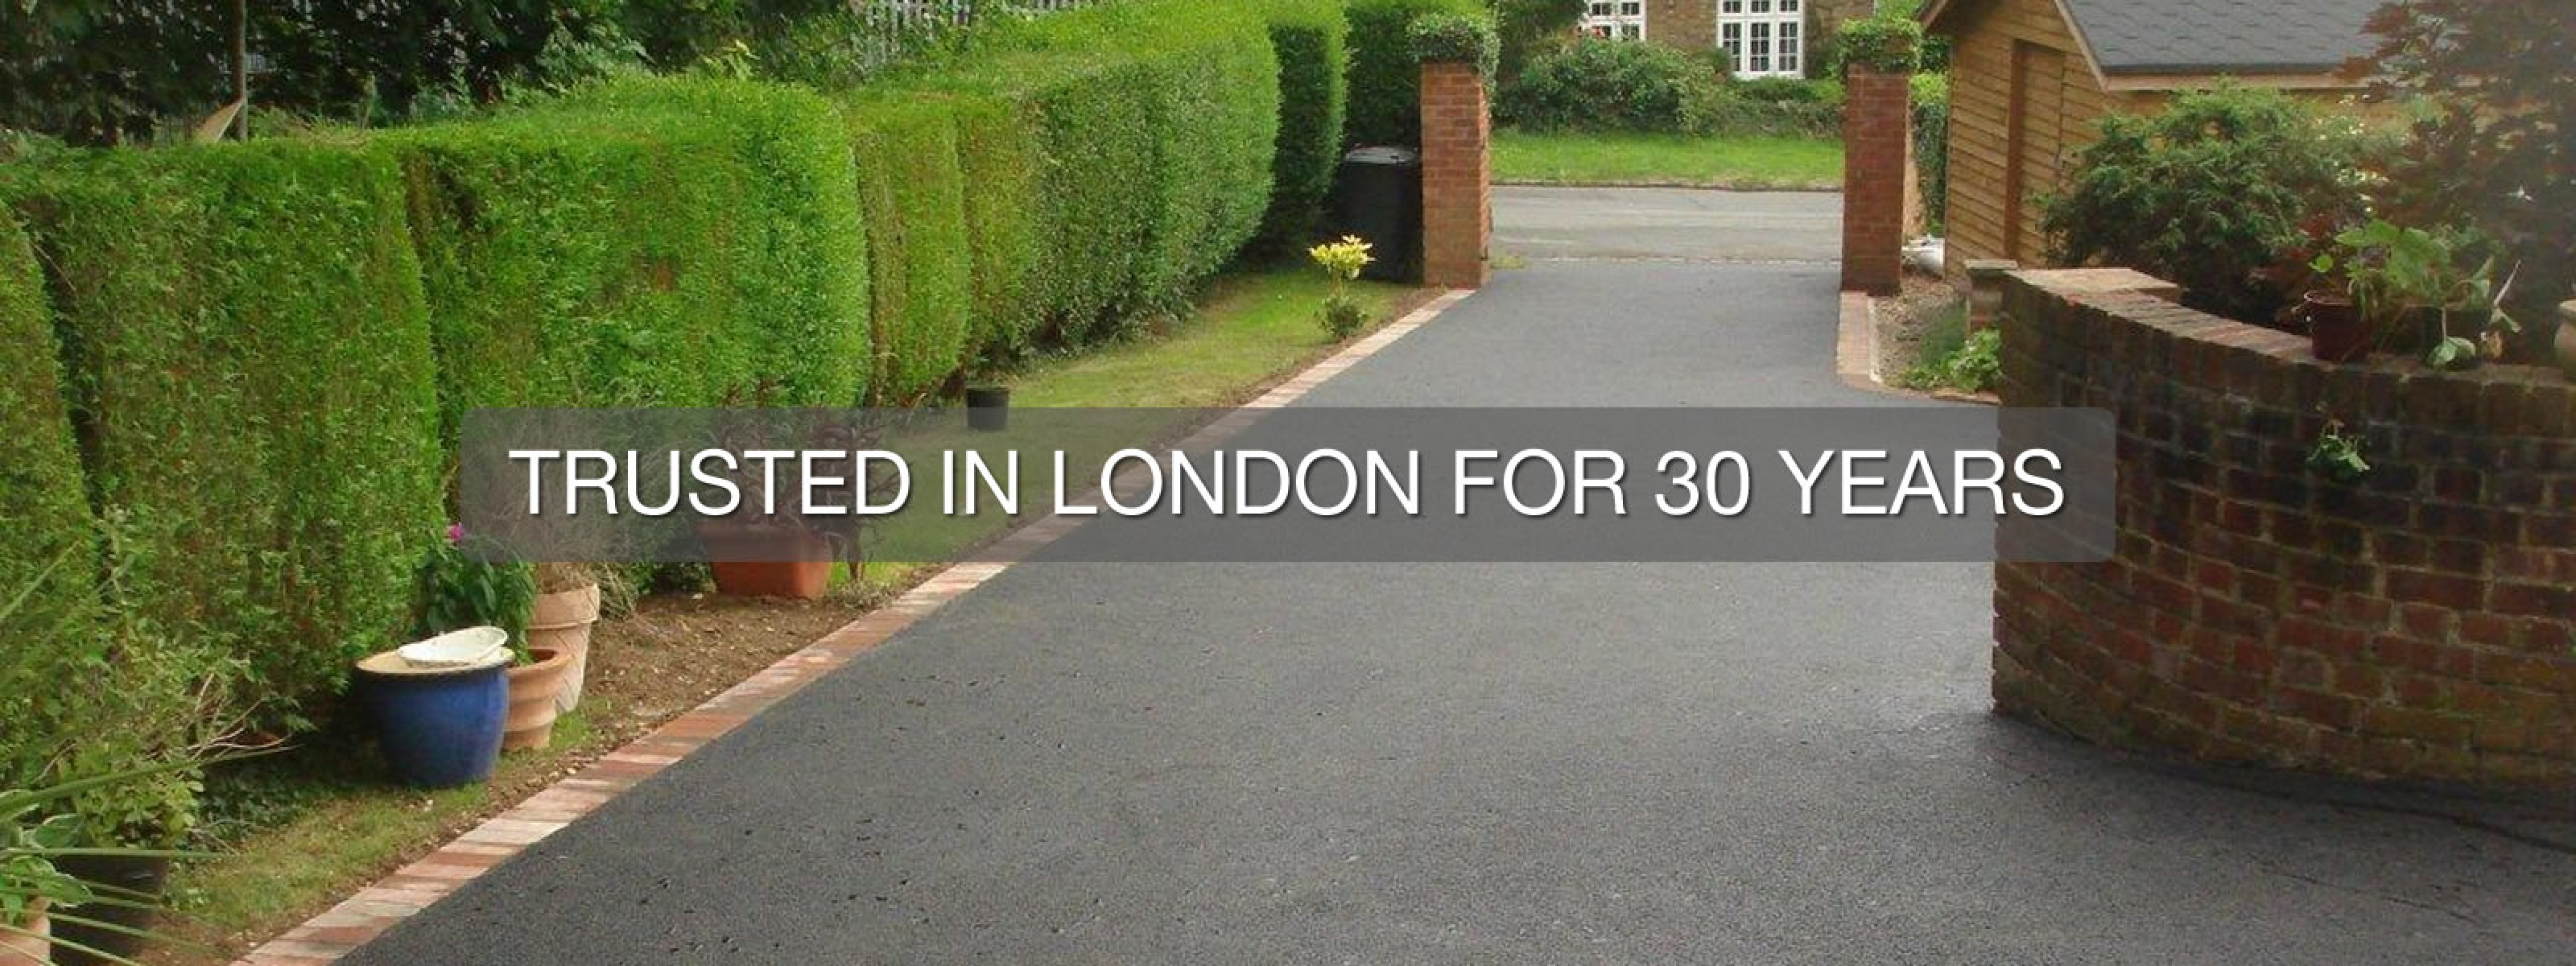 Glenco Driveways - Trusted in London for 30 years